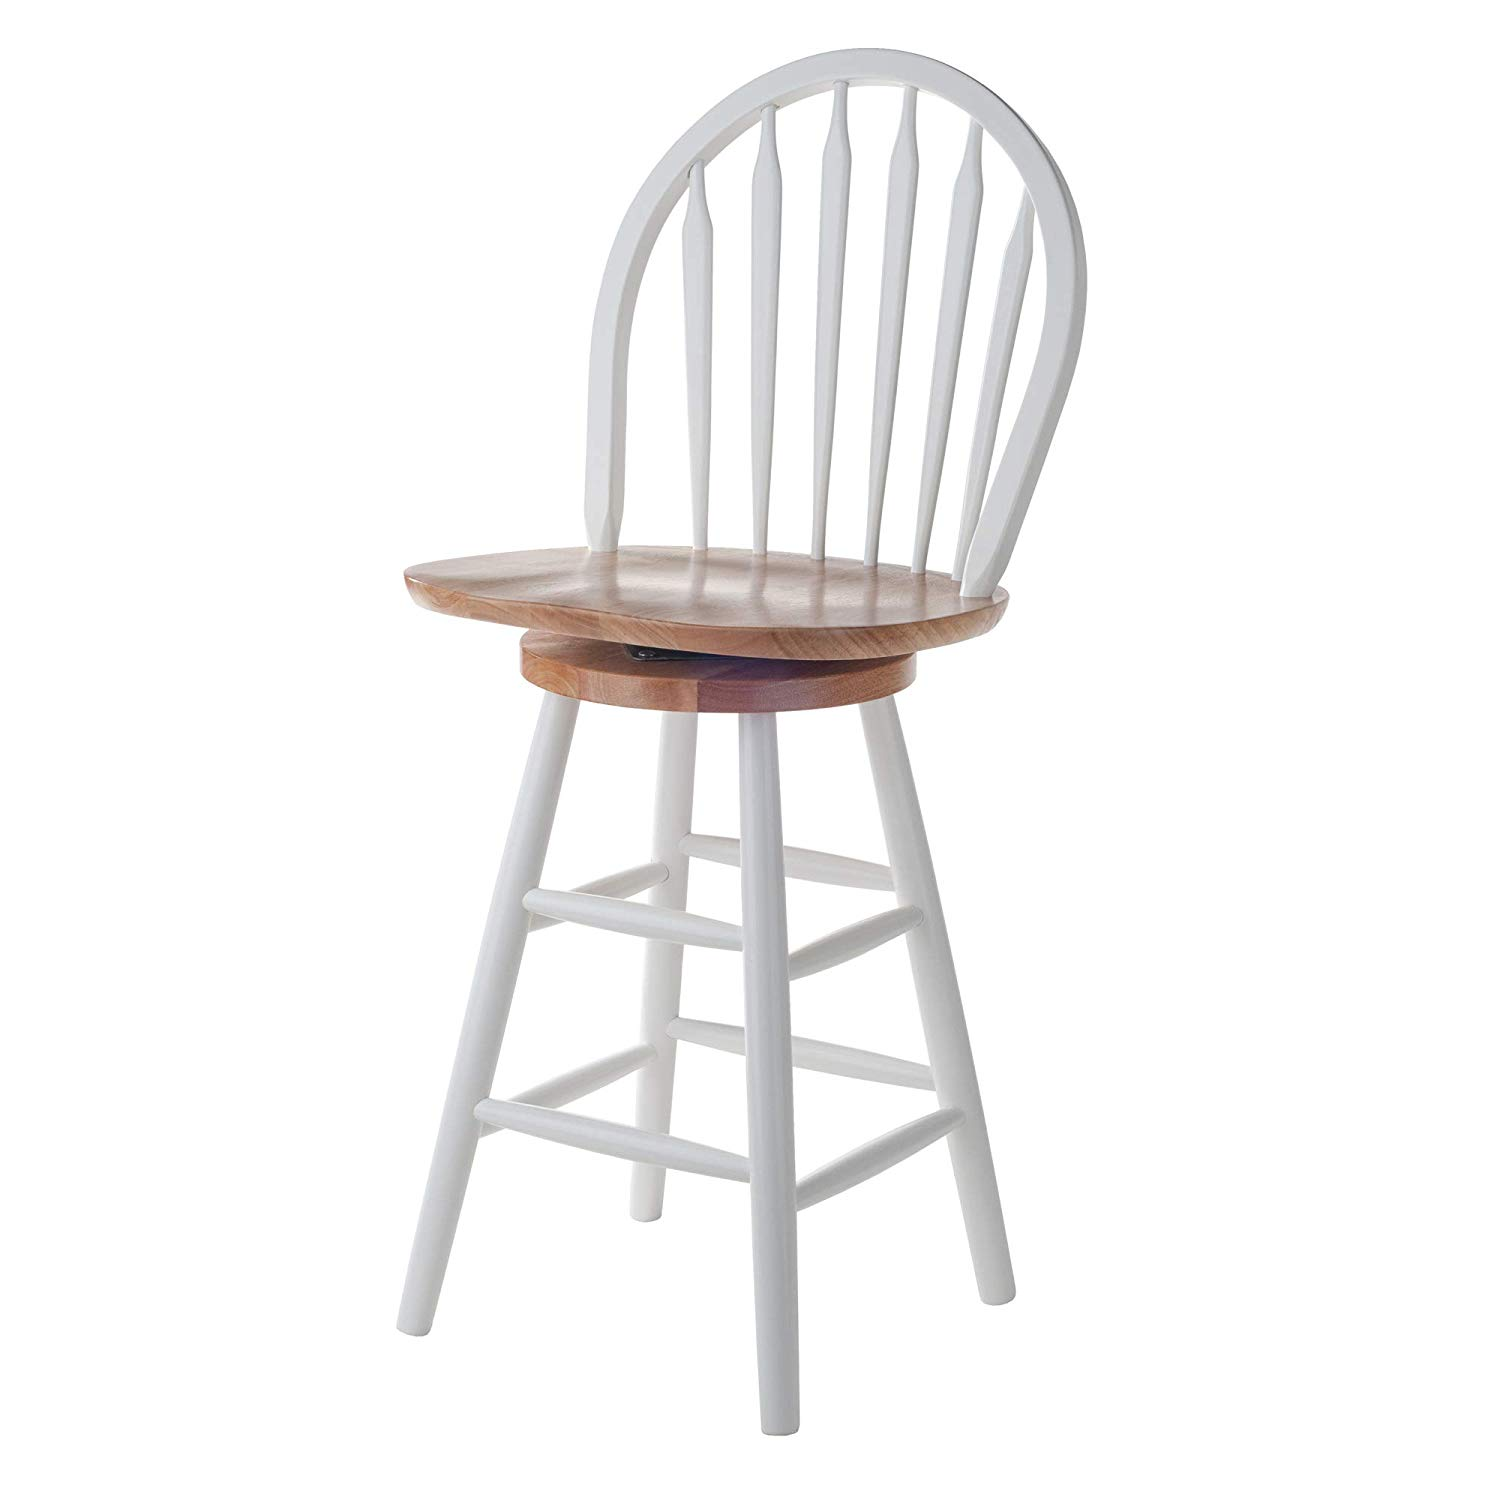 Stupendous Winsome Wood Windsor 24 Counter Height Swivel Bar Stool Squirreltailoven Fun Painted Chair Ideas Images Squirreltailovenorg